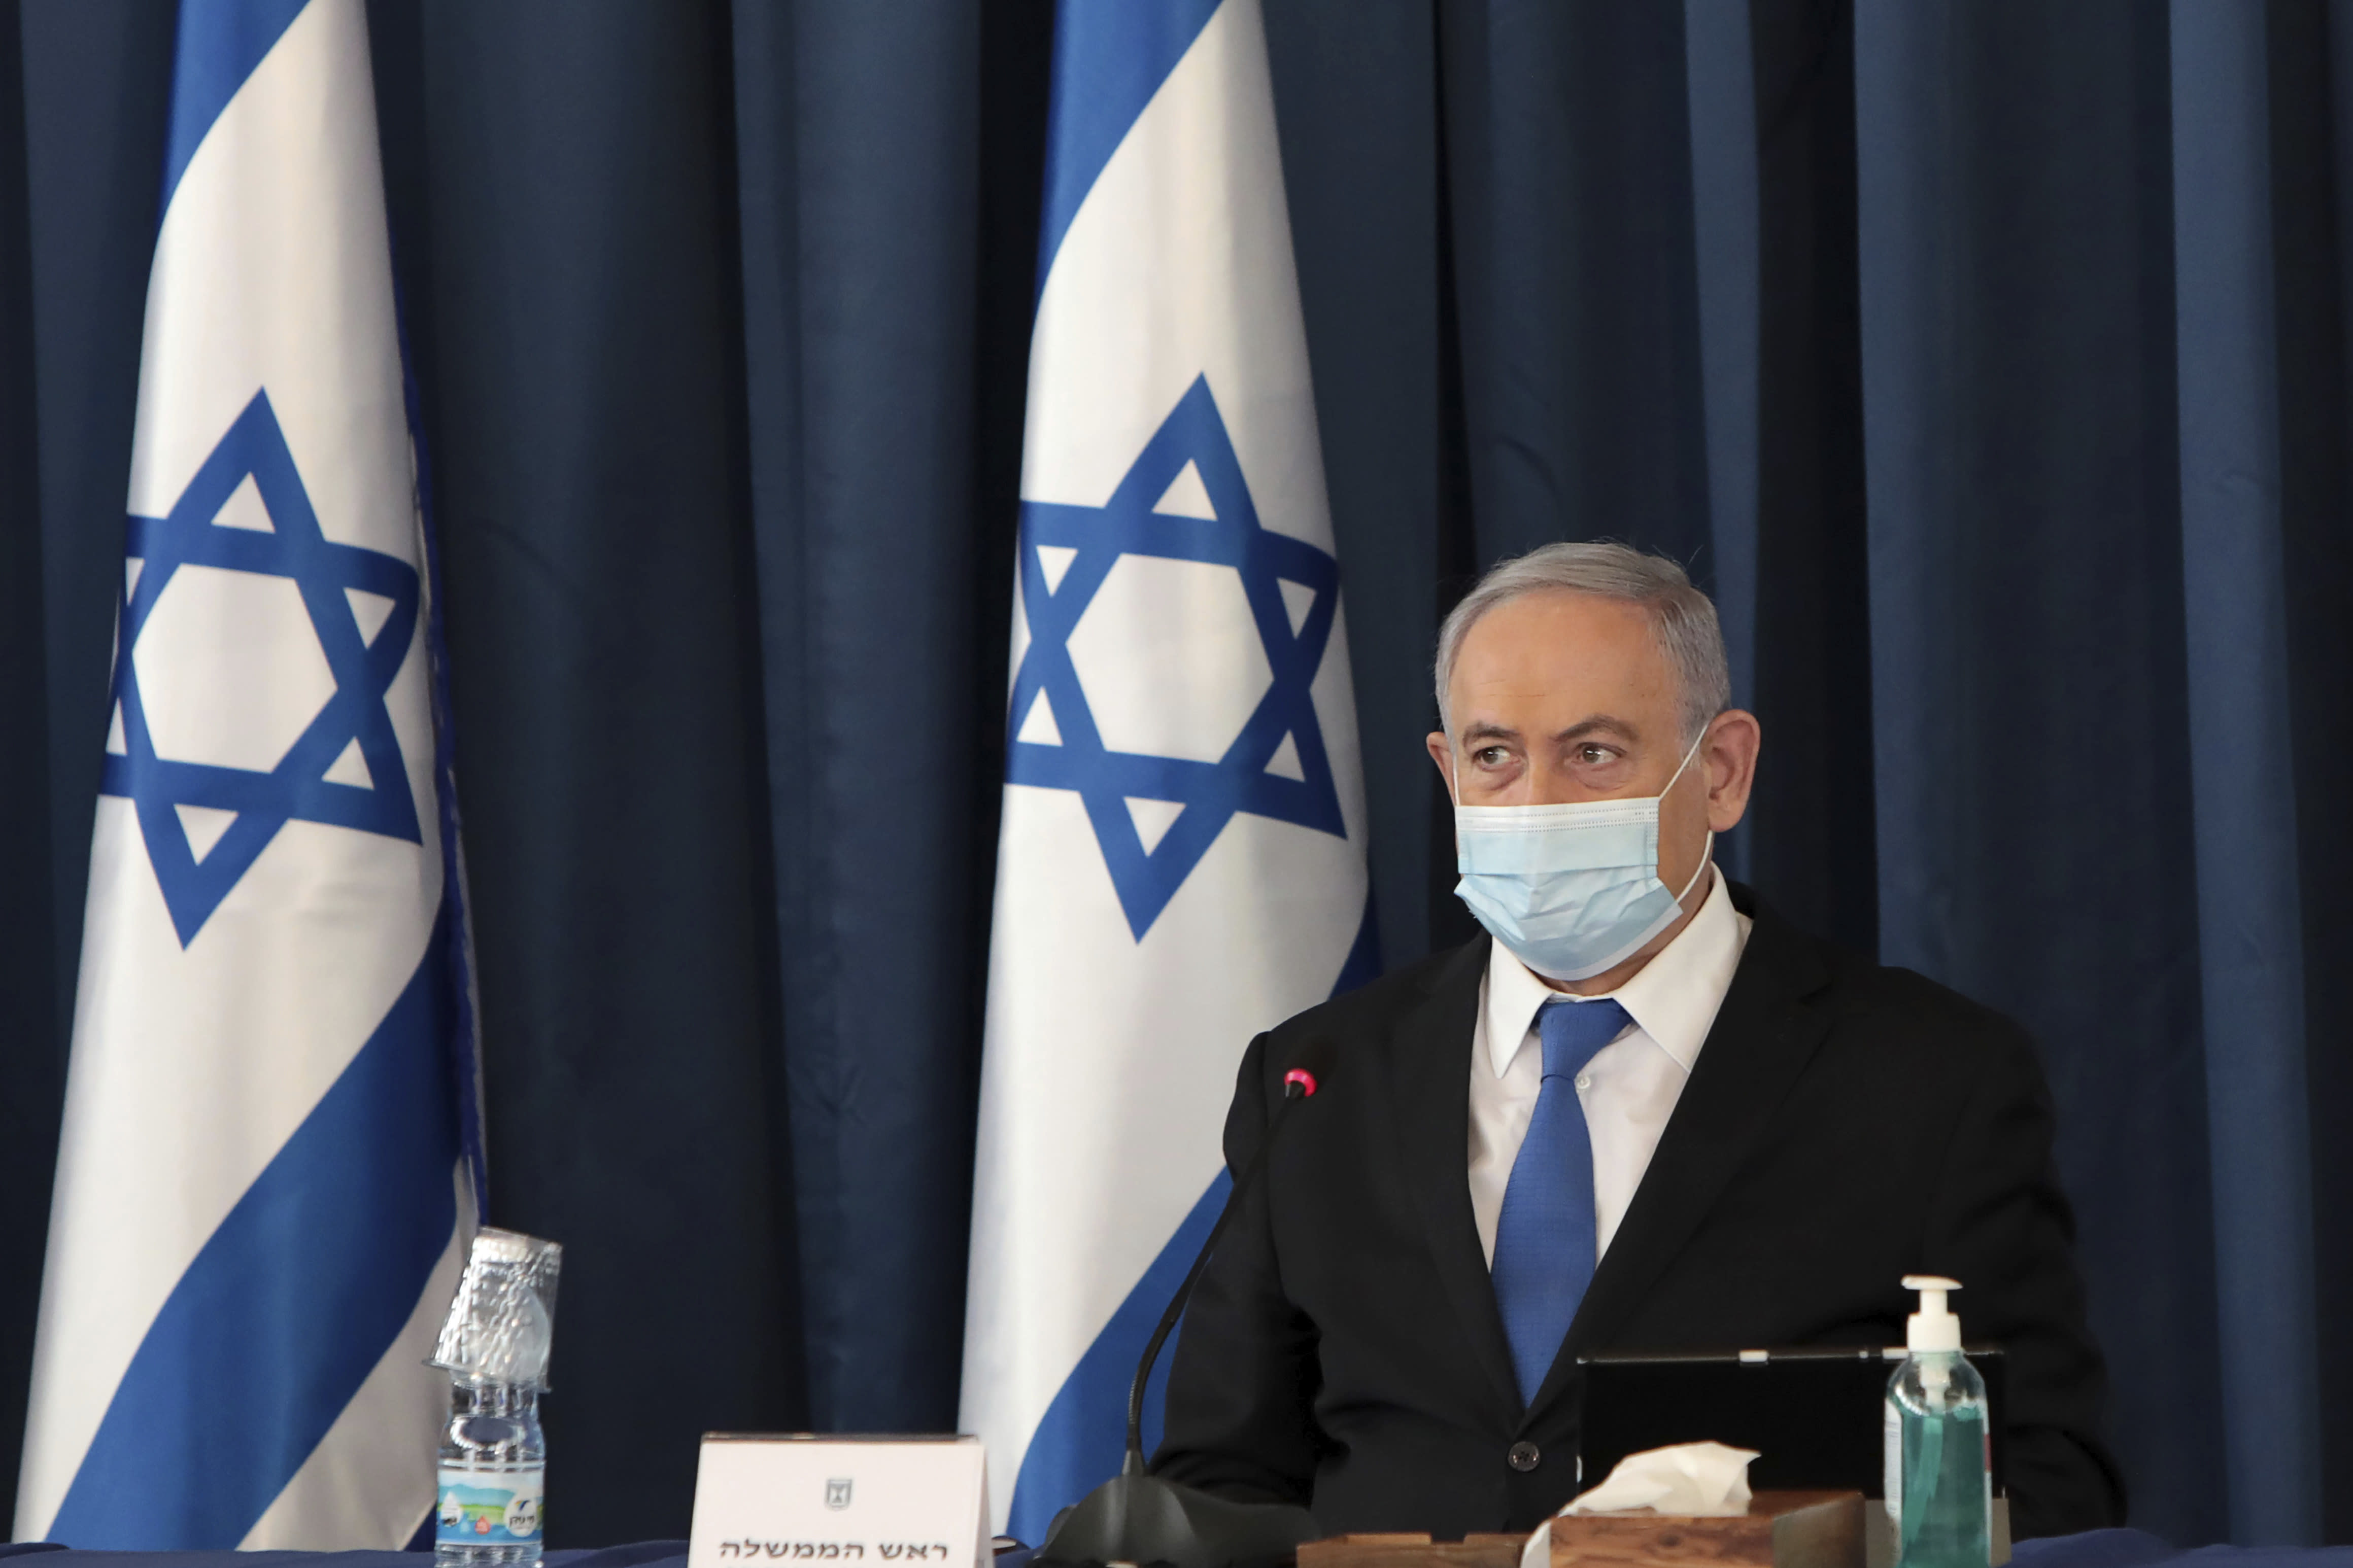 Israeli Prime Minister Benjamin Netanyahu wears a face mask to help prevent the spread of the coronavirus as he opens the weekly cabinet meeting, at the foreign ministry, in Jerusalem, Sunday, July 5, 2020. (Photo by Gali Tibbon/Pool via AP)